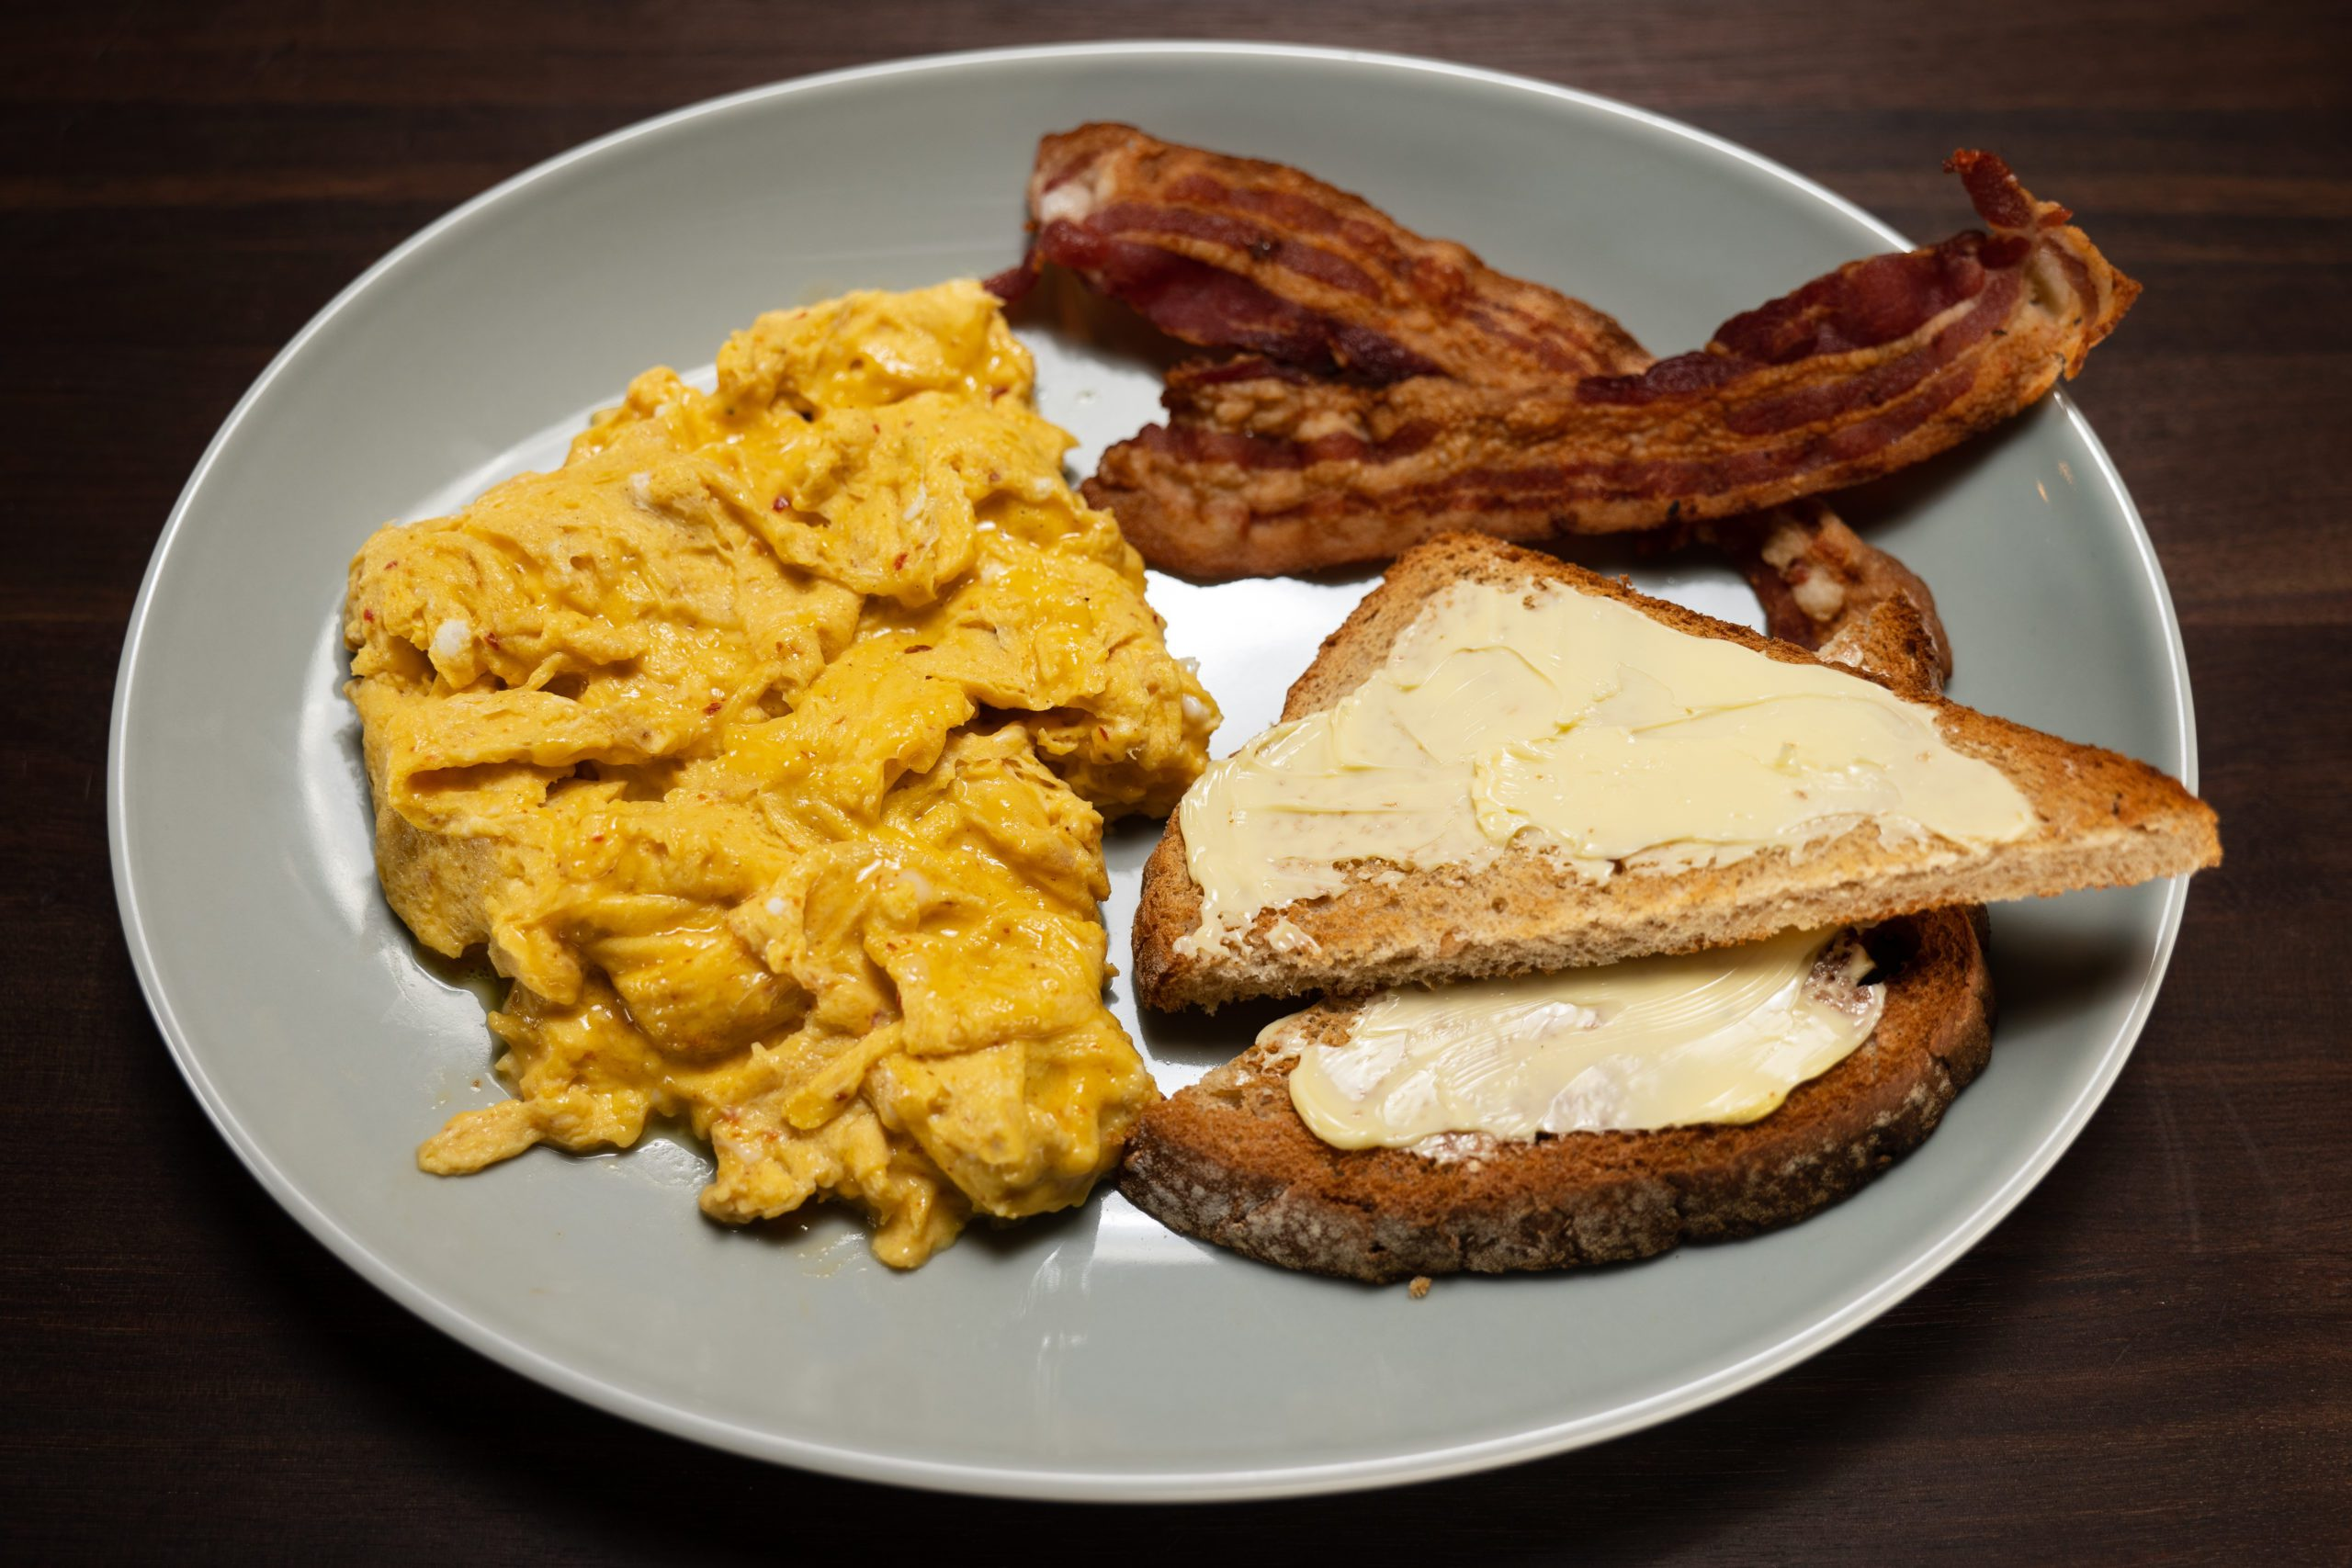 20 second scrambled eggs with harissa on a grey plate with bacon and buttered toast.